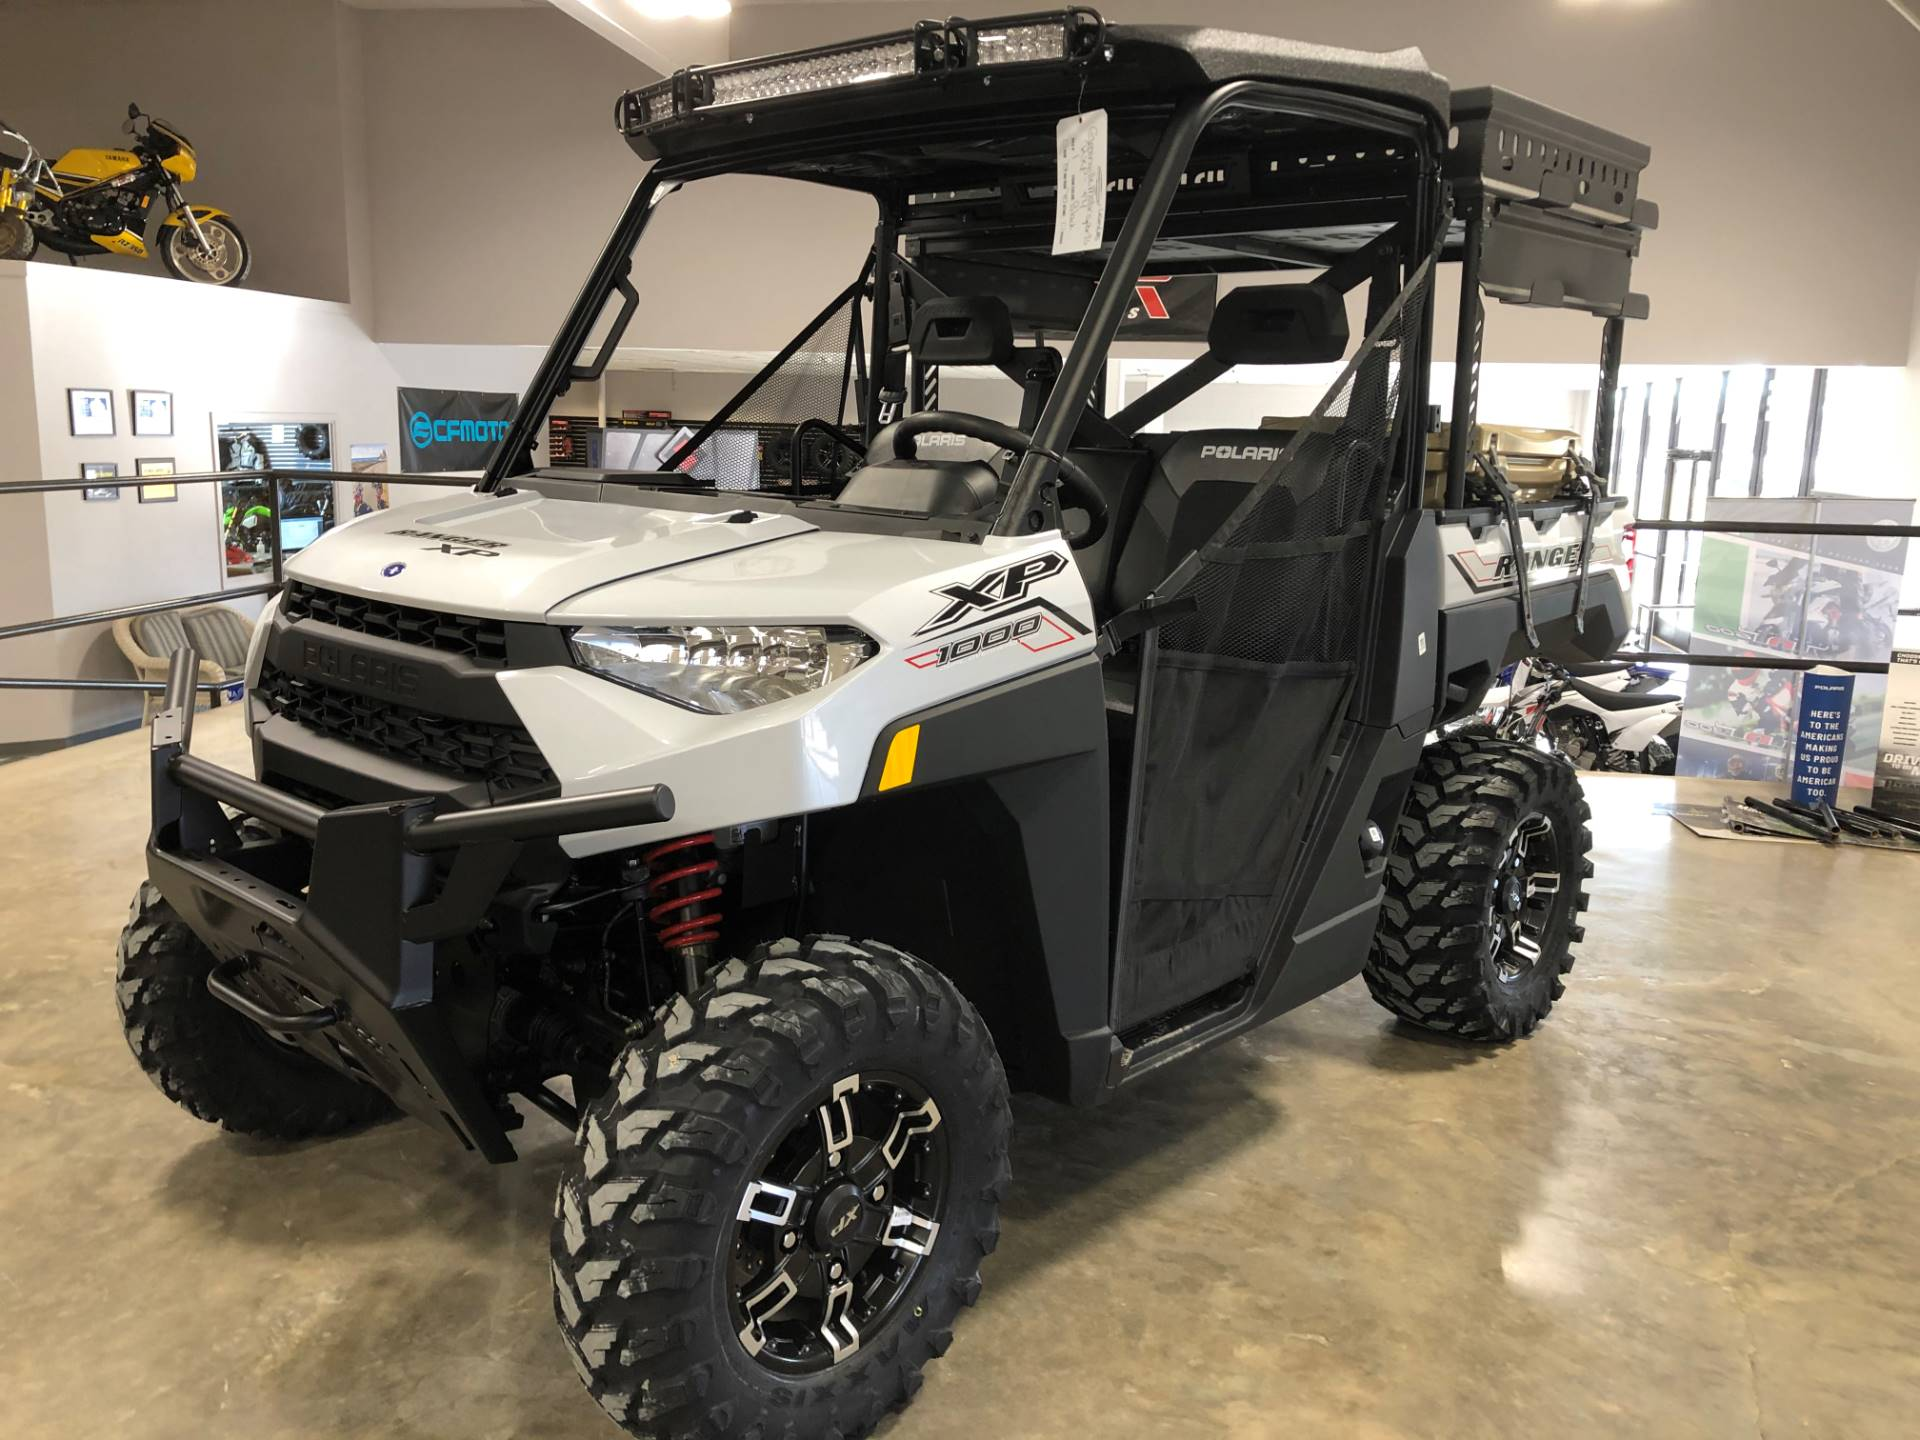 2021 Polaris Ranger XP 1000 Premium in Leland, Mississippi - Photo 2